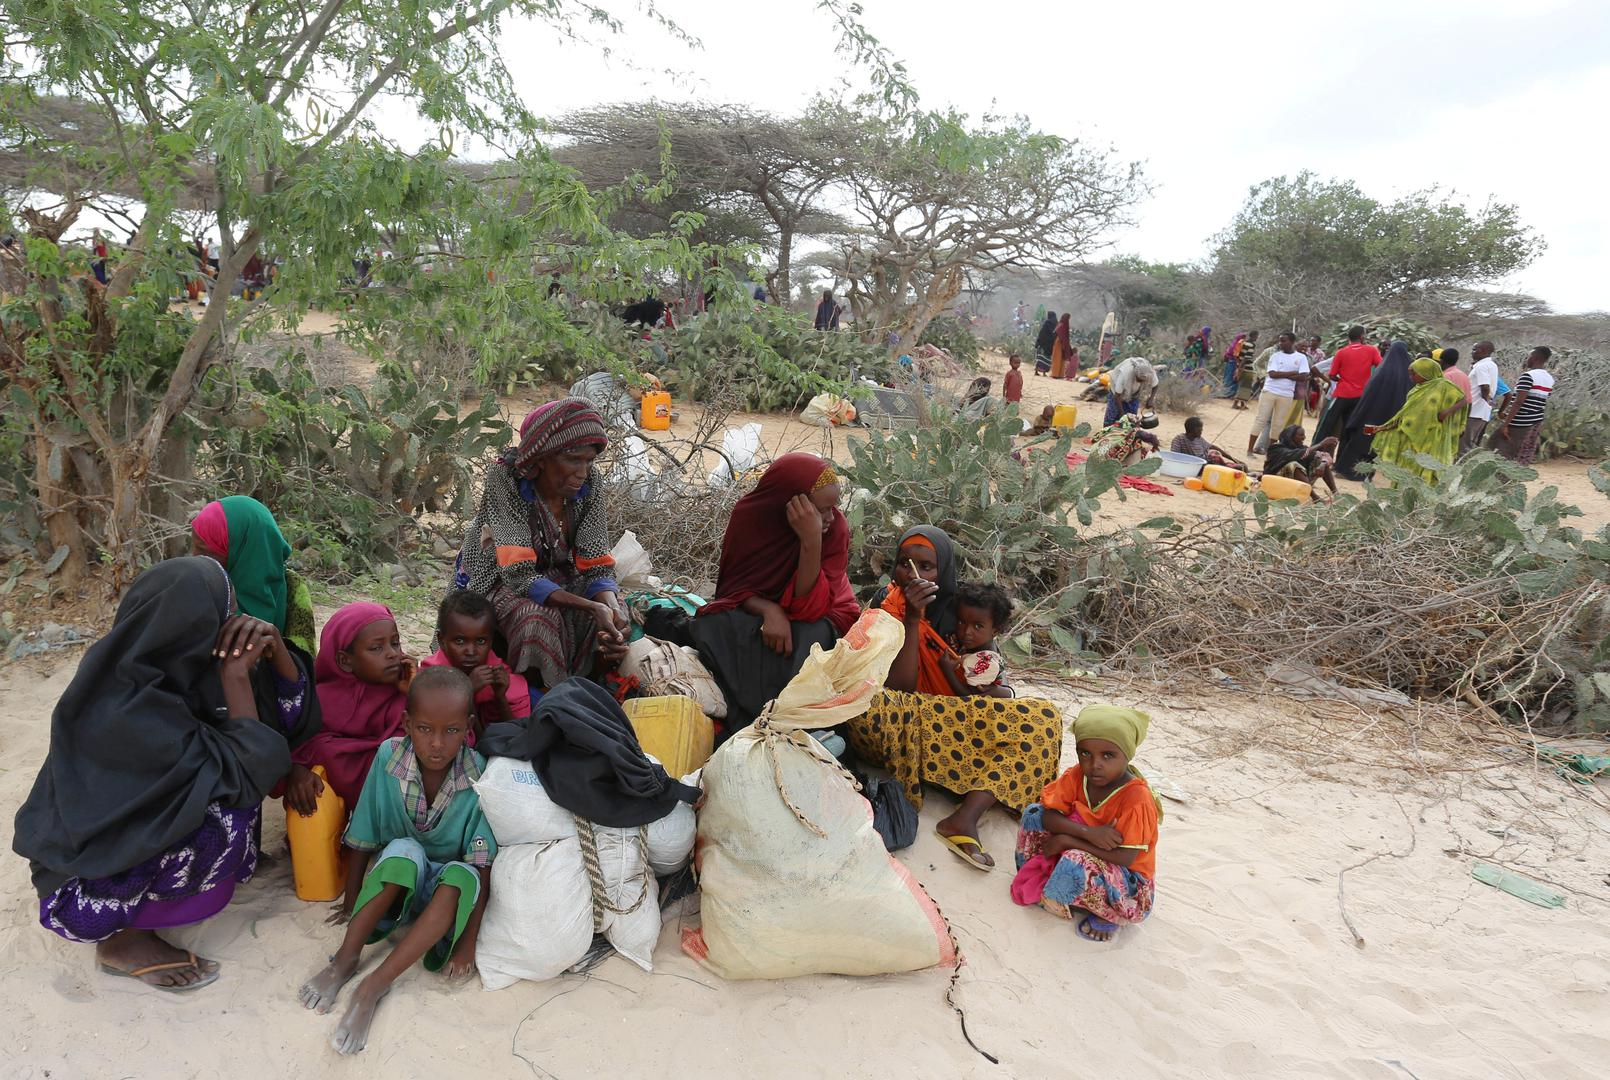 Somali families rest as they flee from drought-stricken Lower Shabelle region before entering makeshift camps in Somalia's capital, Mogadishu, joining the thousands already displaced, March 17, 2017. Al-Shabab forces attacked villages in Lower Shabelle re